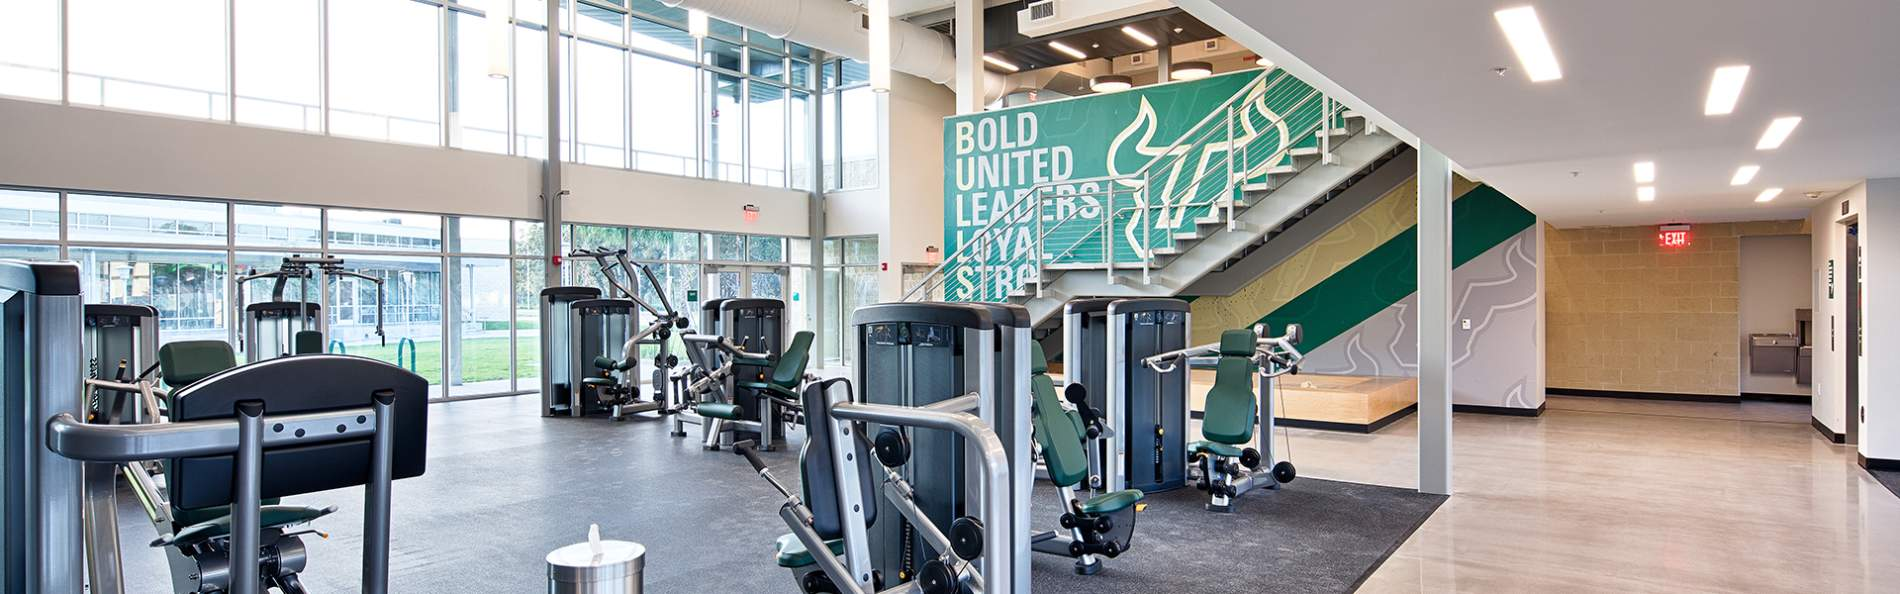 Indoor gym equipment at the new USF Wellness Facility